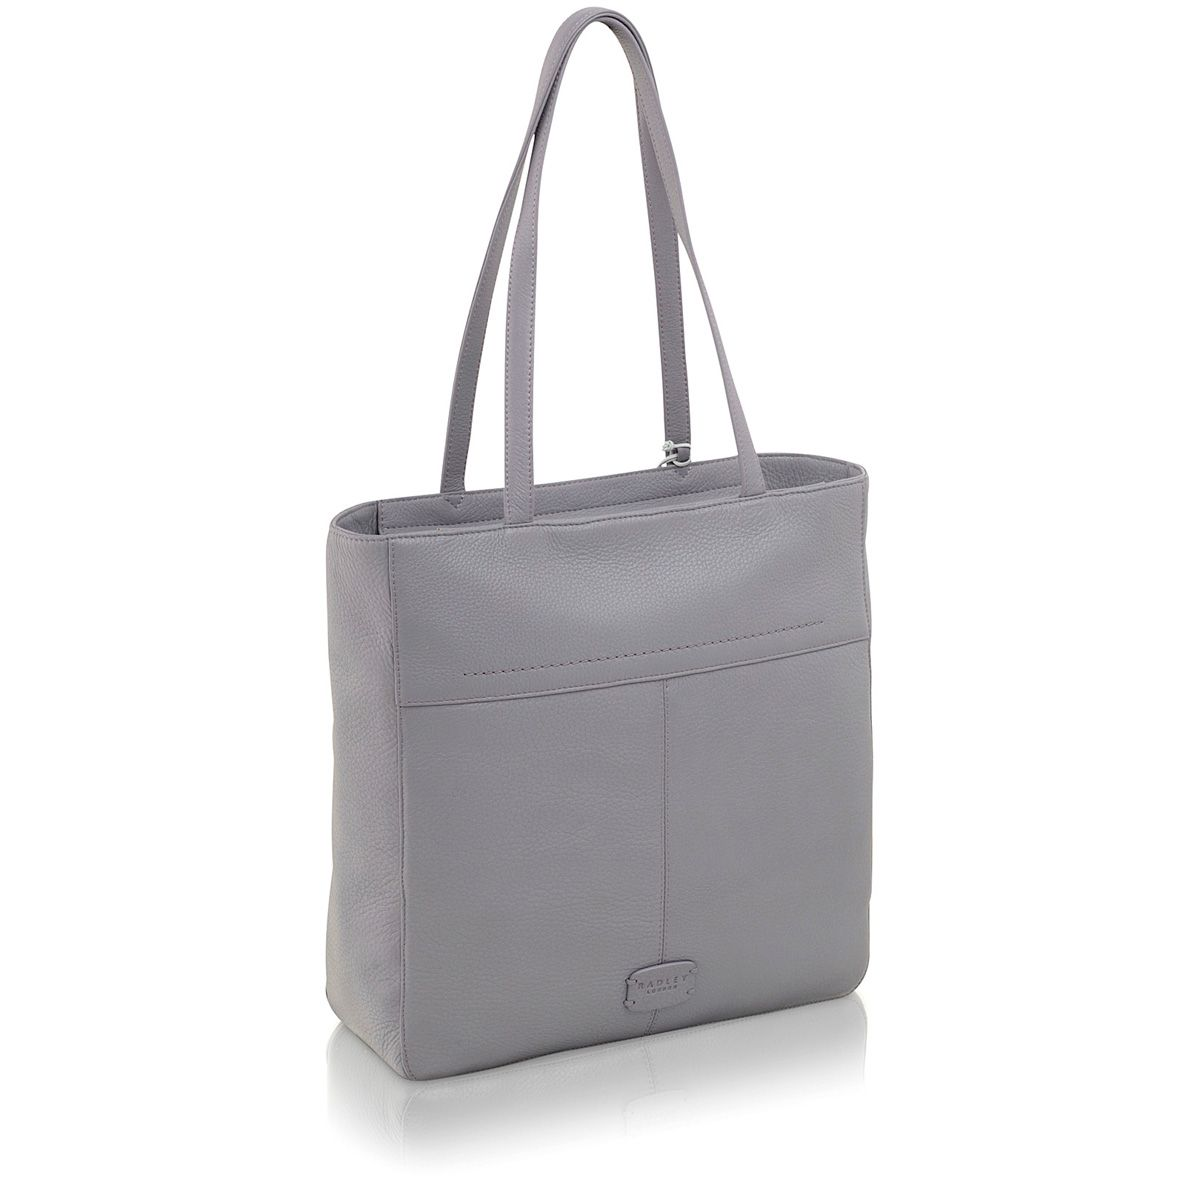 Dayton purple large leather tote bag